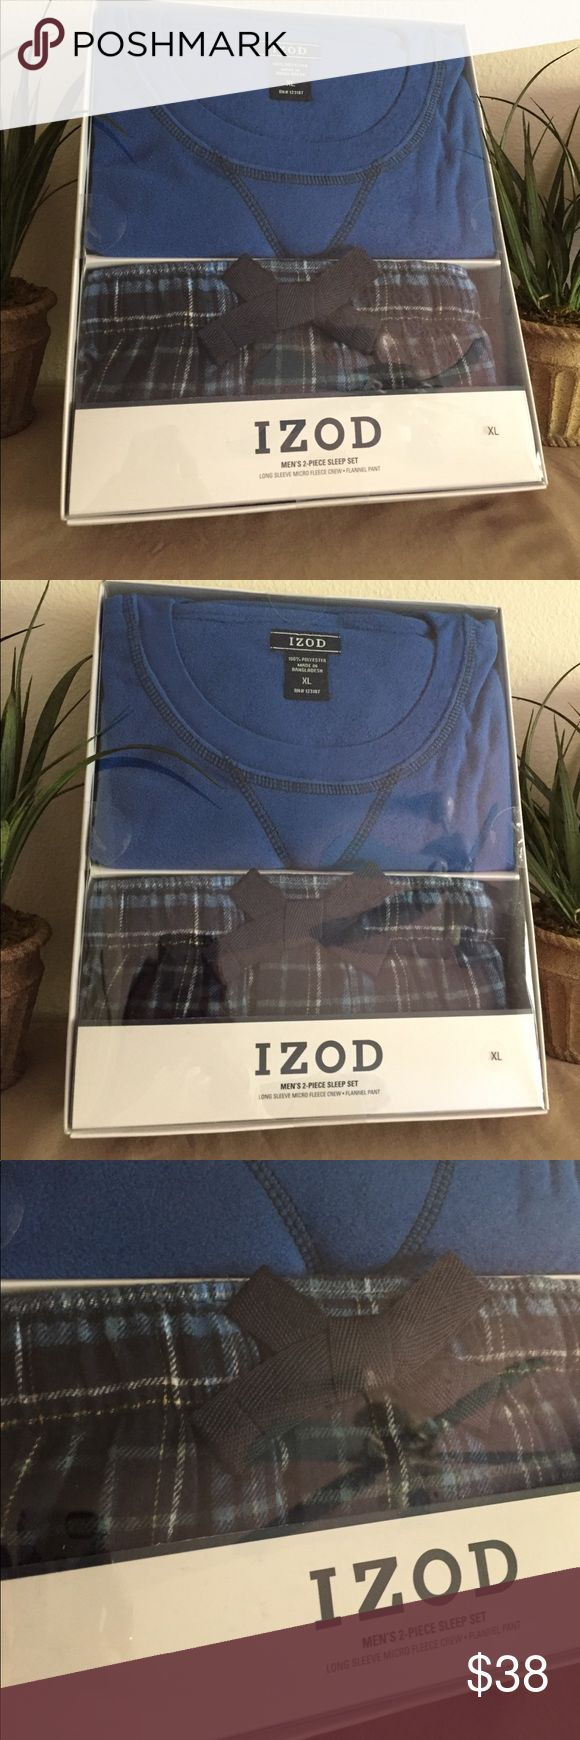 NEW IZOD Men's 2 Piece Sleep Lounge Set NEW IN BOX. IZOD sleep / lounge set. Set includes long sleeve micro fleece crew, and flannel pant. The top is royal blue, pants are a matching plaid. *hard to photograph due to reflection. Perfect Christmas gift..... very nice set.                                                                      Thanks for looking, and .... happy Poshing!! 🛍 Izod Underwear & Socks